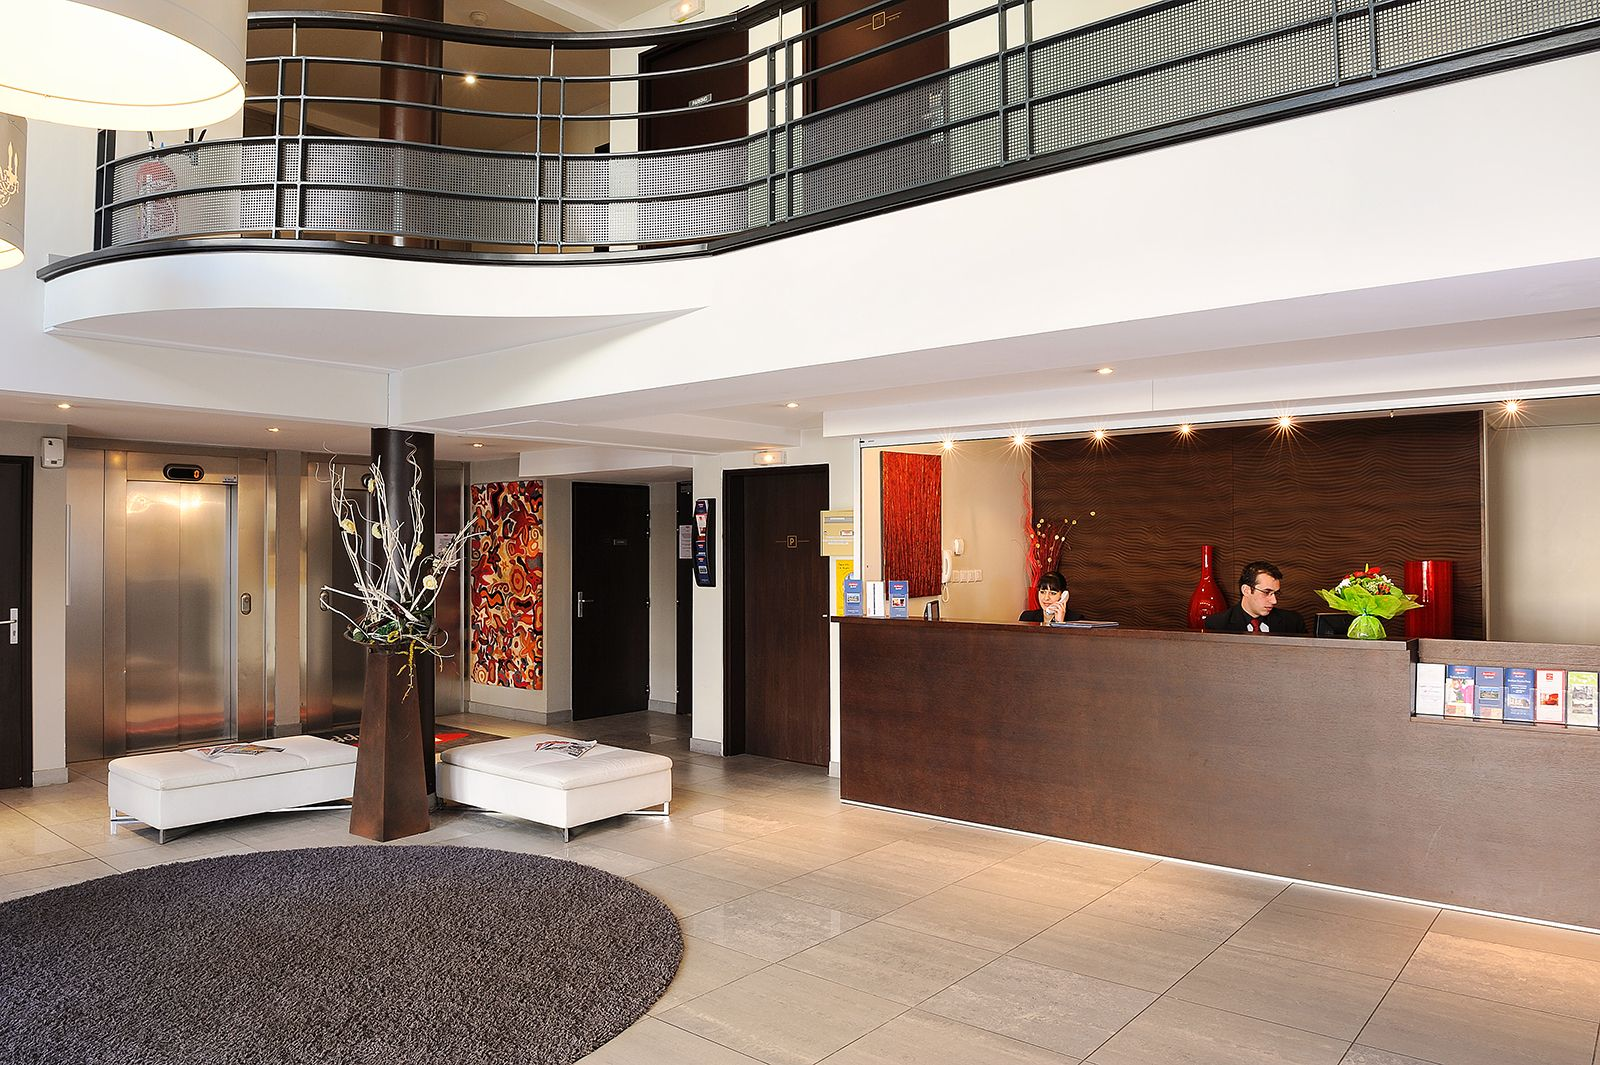 Residence residhome apparthotel metz lorraine lorraine for Appart hotel thionville